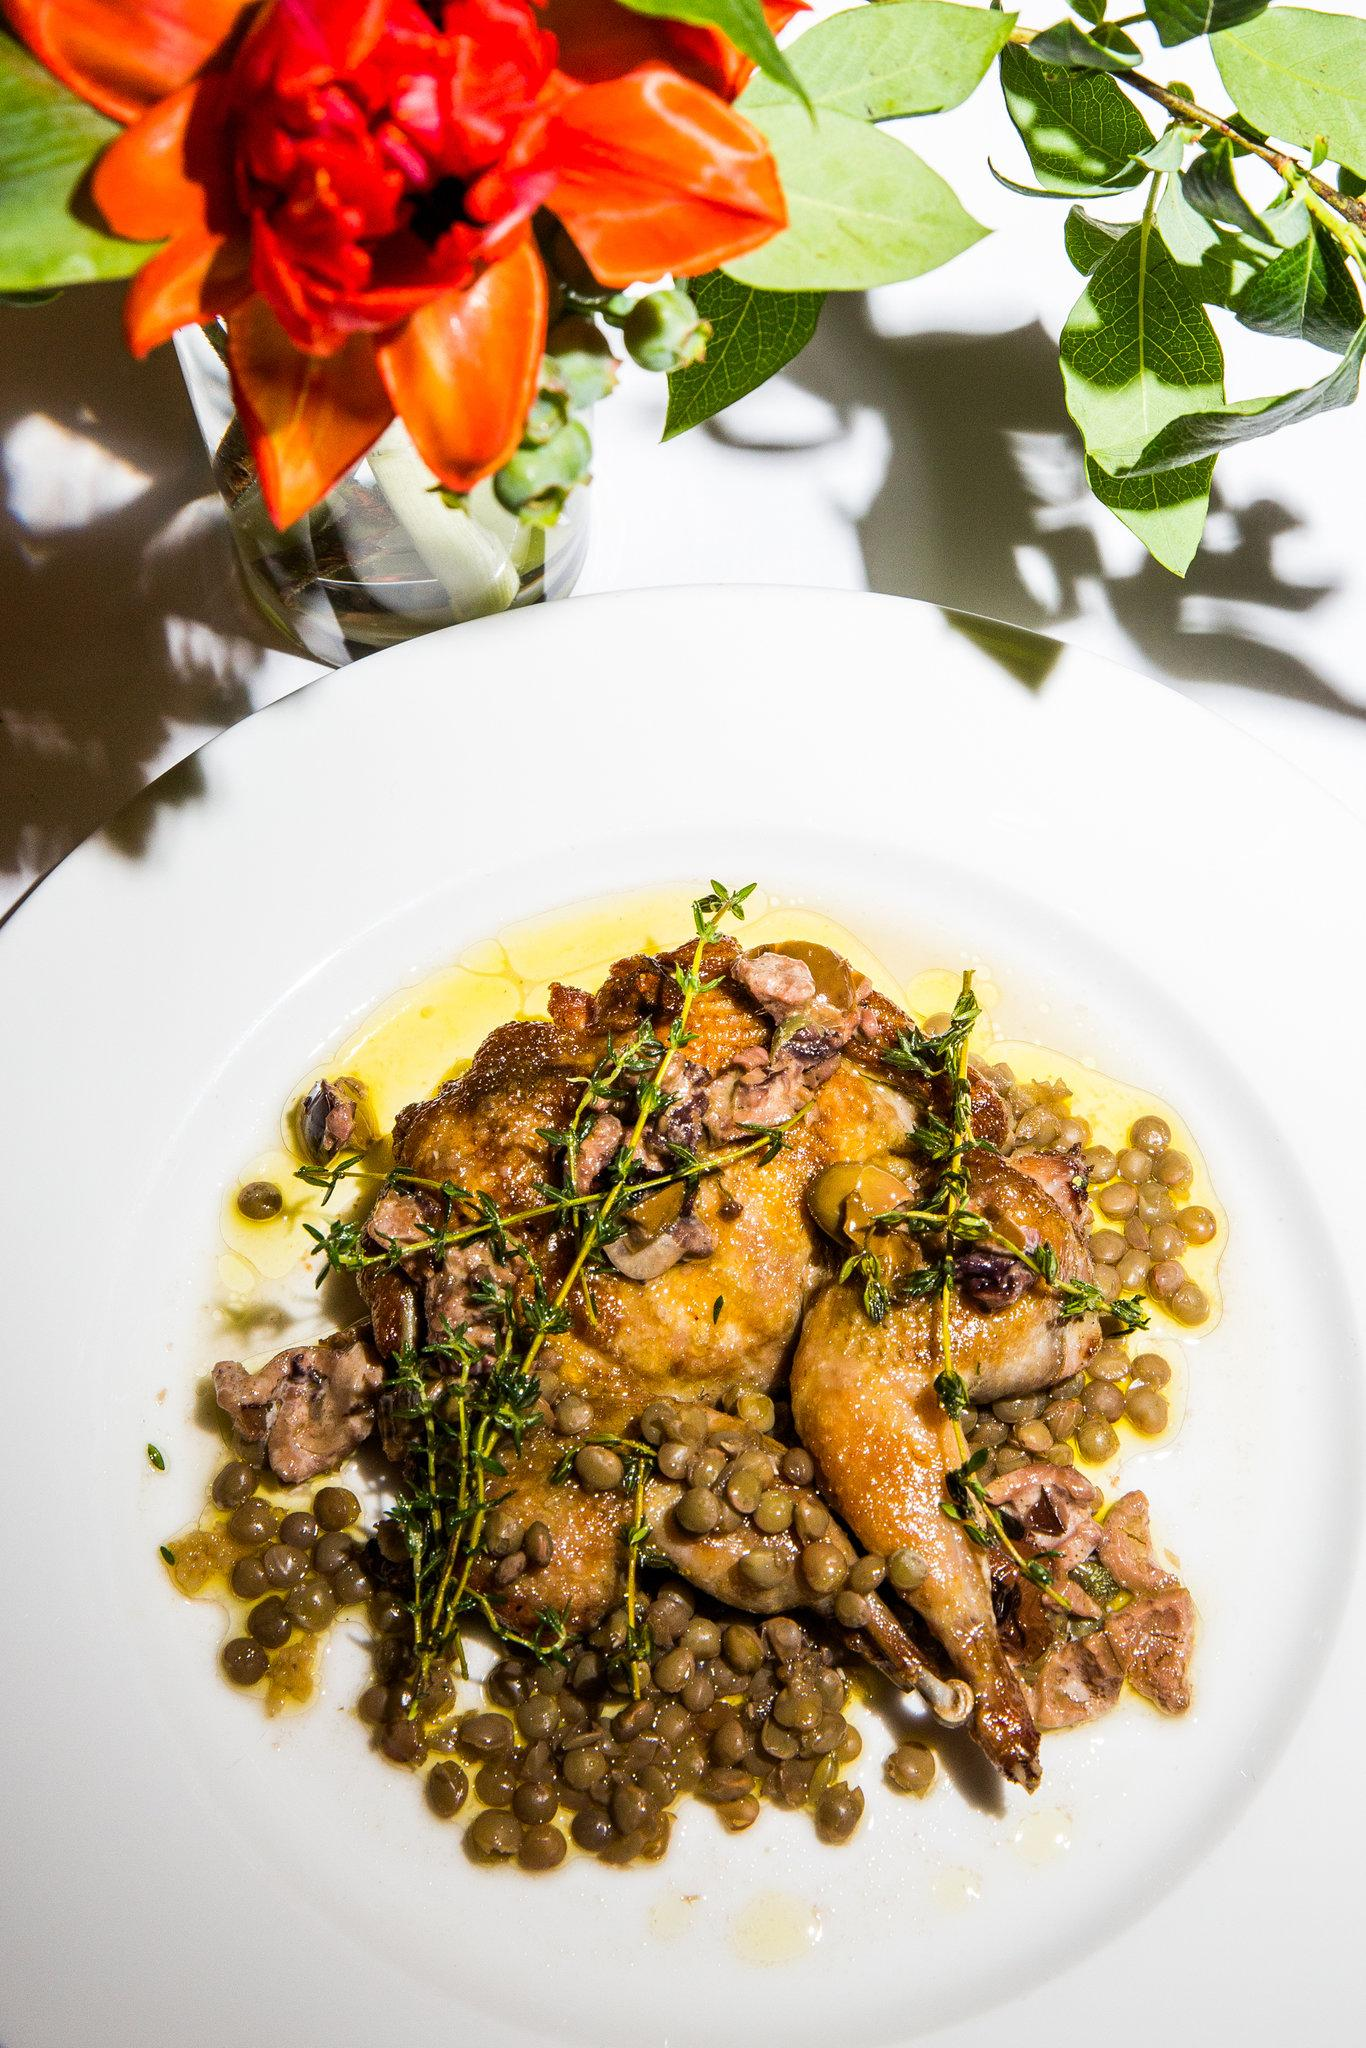 Roasted quail with flowering thyme, lentils and tapenade